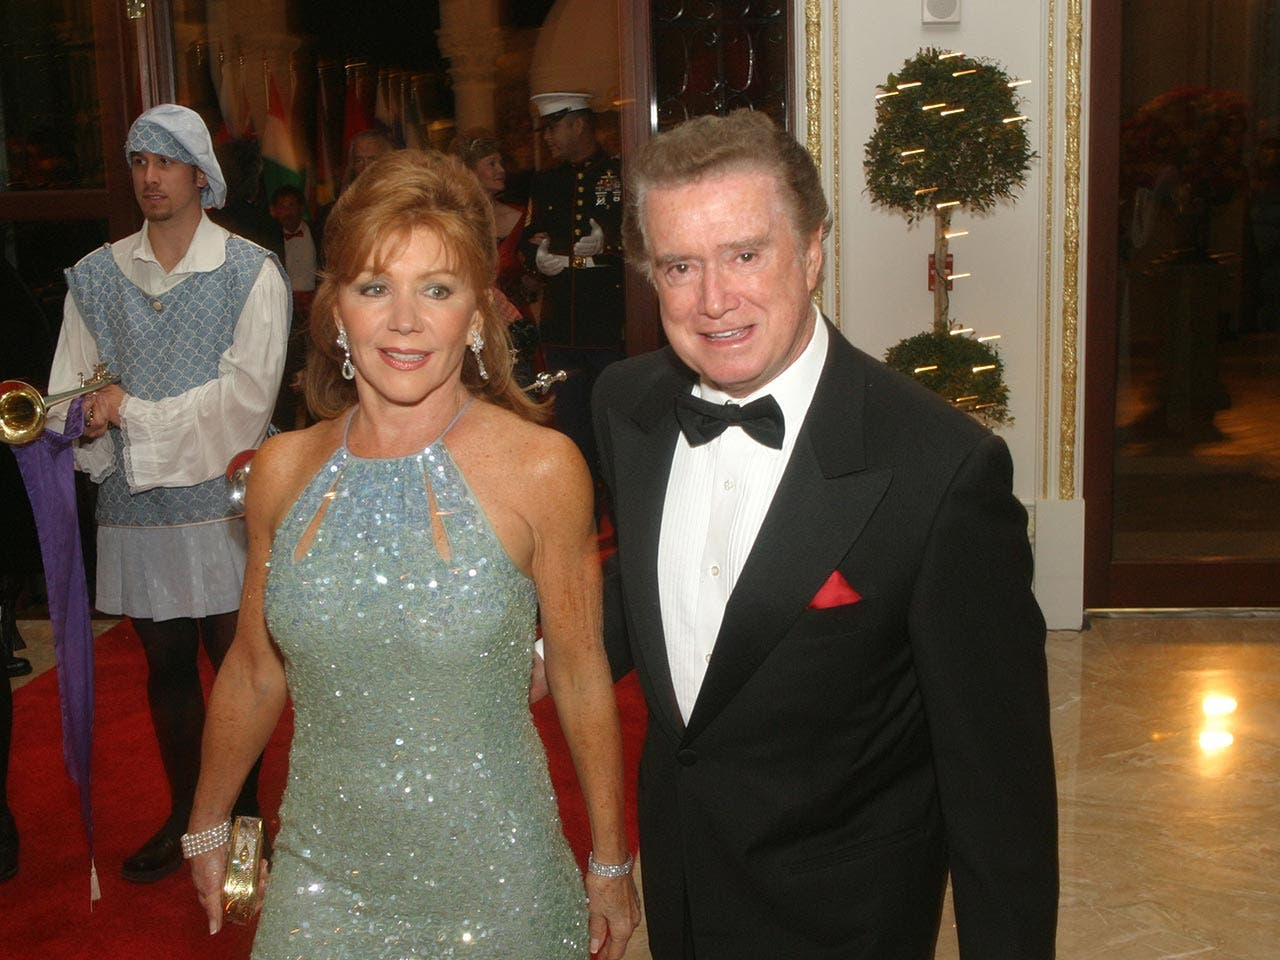 Regis and Joy Philbin in Mar-a-Lago | CAPEHART/Getty Images